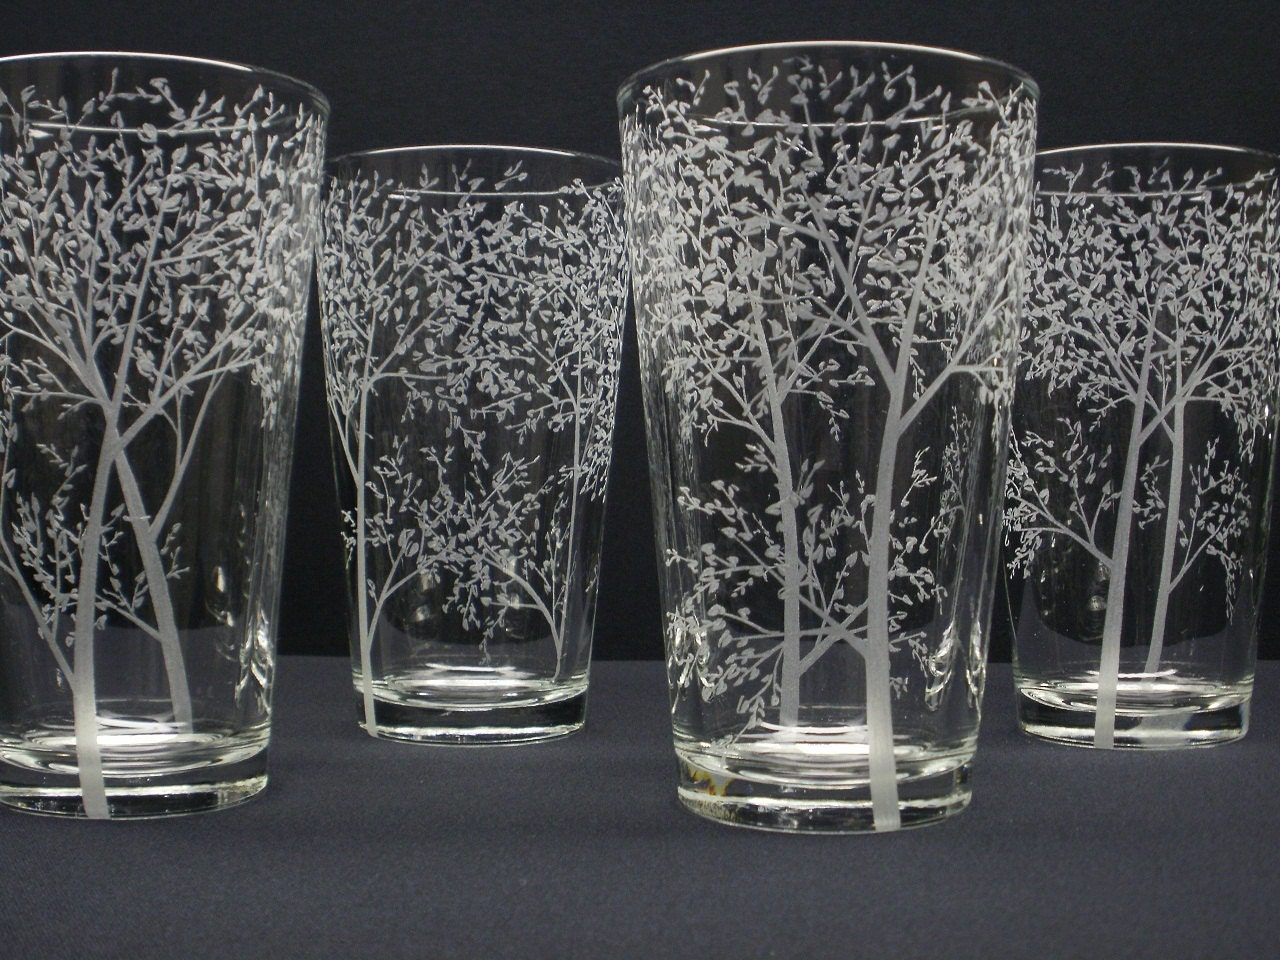 4 Pint Glasses Hand Engraved Branches And Leaves